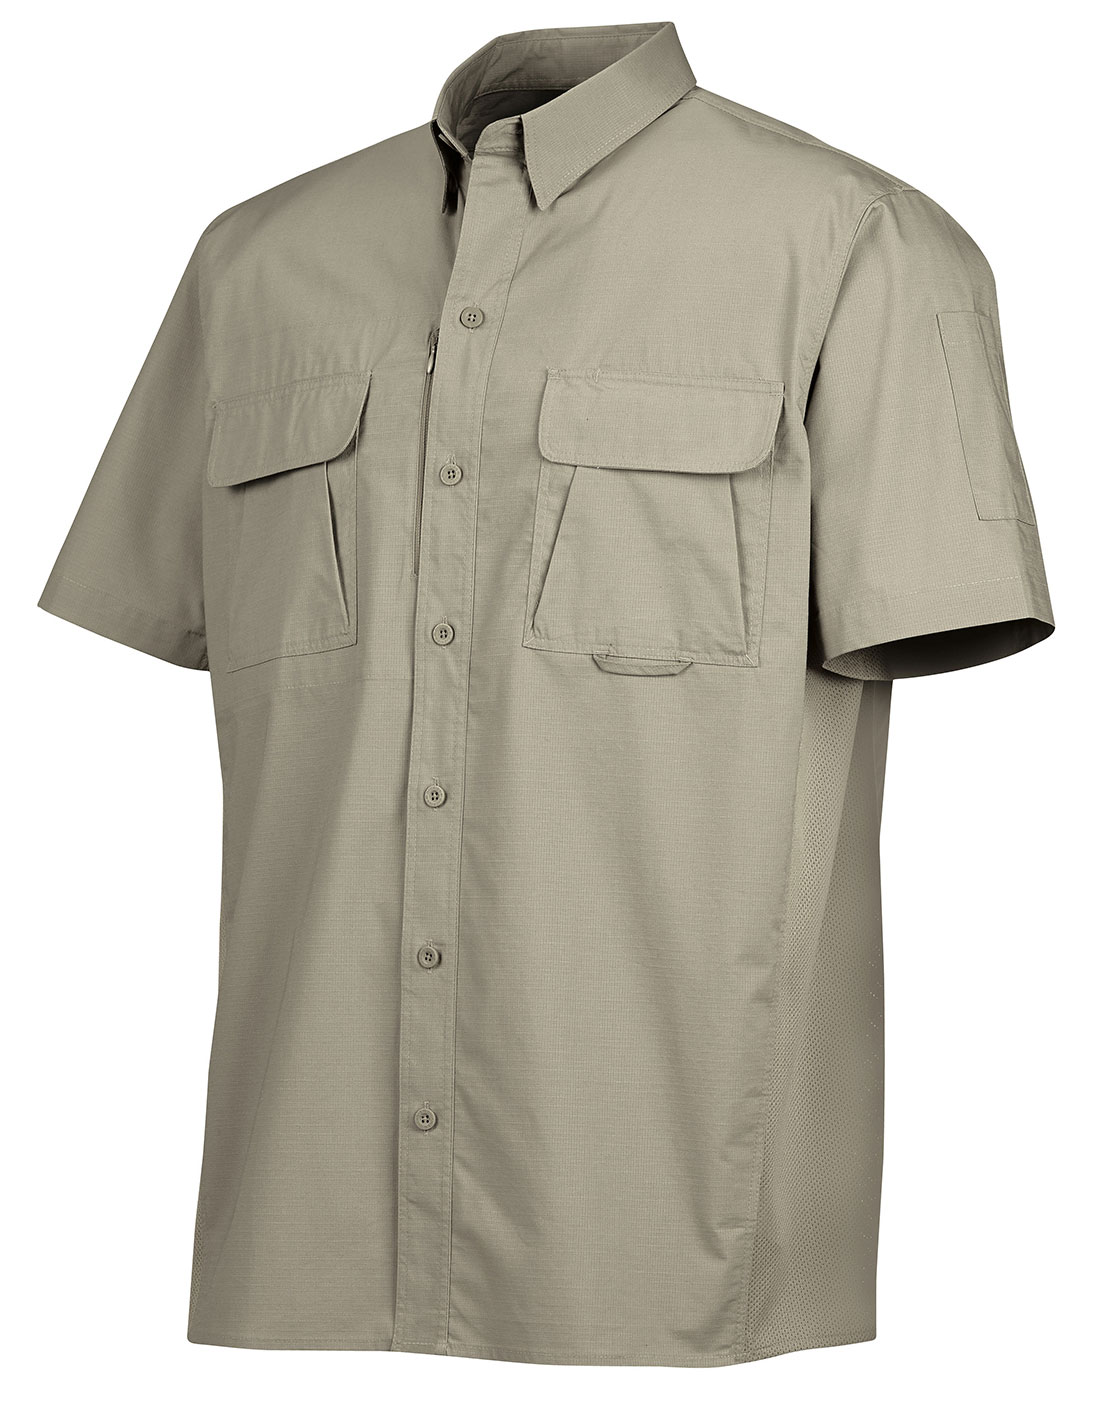 Dickies Mens Ripstop Ventilated Tactical Shirt